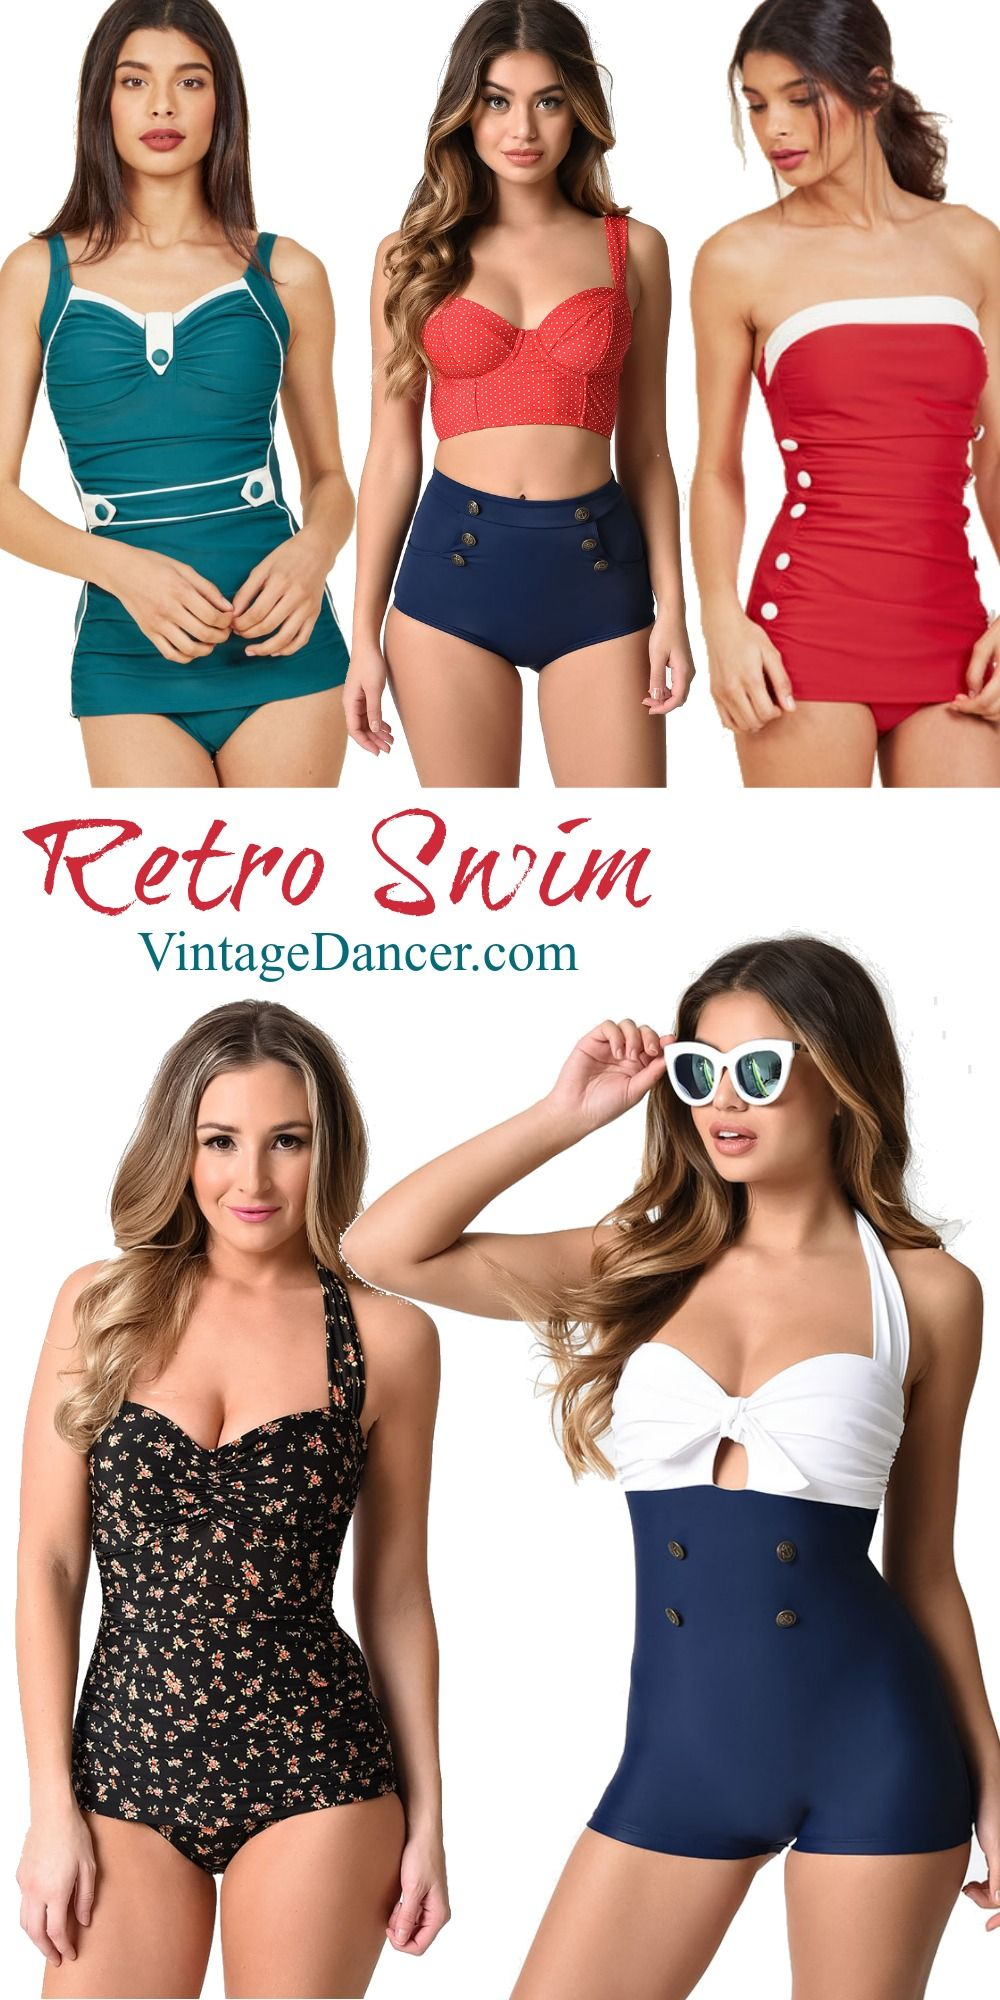 913c43f19ade3 New Vintage Retro Swimsuits